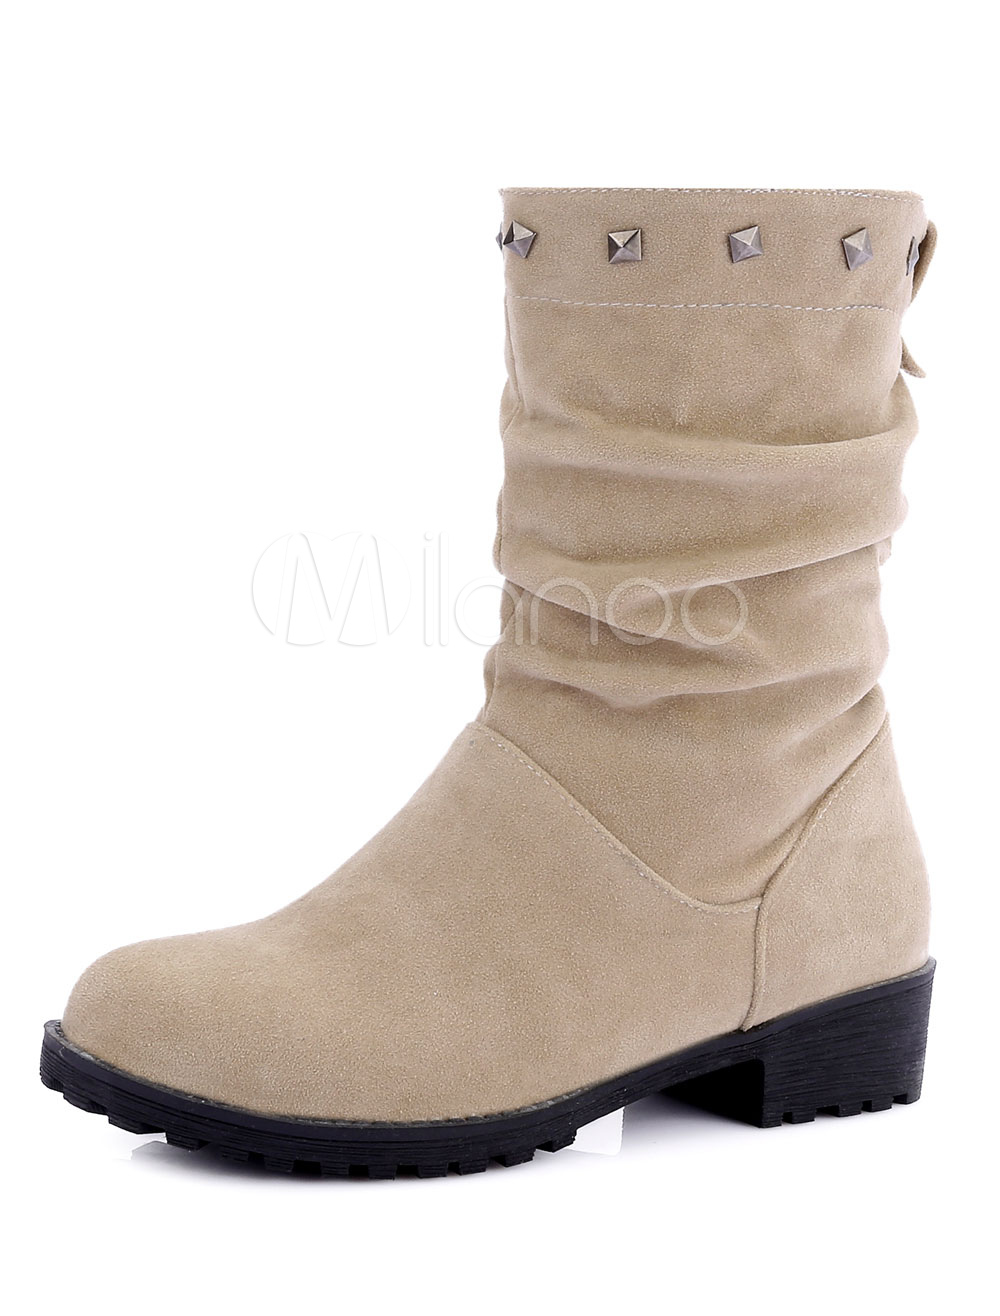 Buy Women's Suede Booties Apricot Round Toe Rivets Slip On Winter Boots for $33.24 in Milanoo store